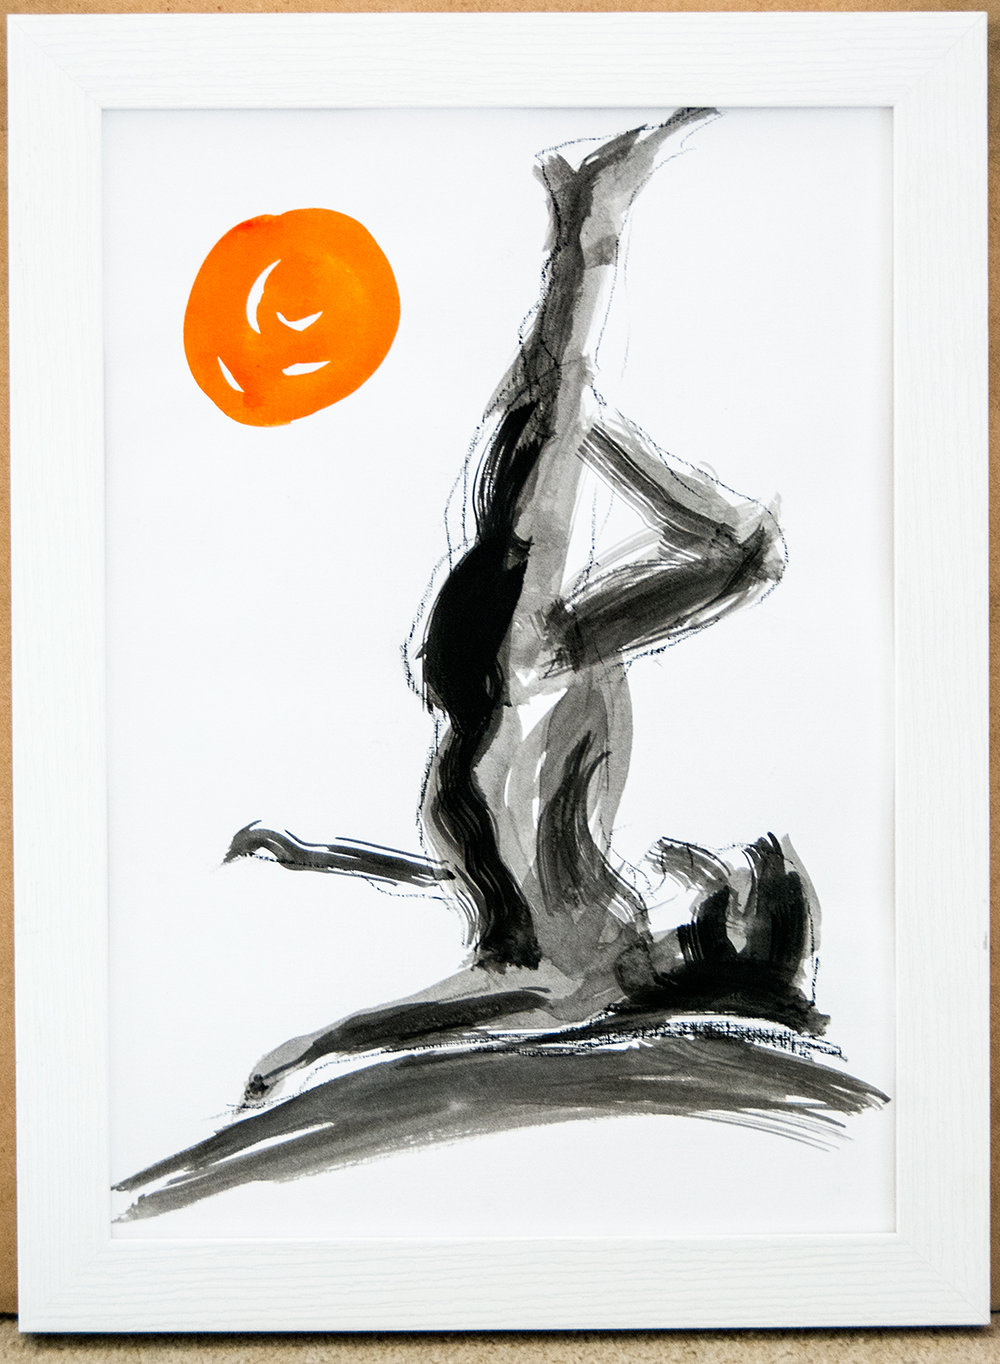 The Dance XIII, ink on watercolour paper, 42x30cm (2017) (private collection)